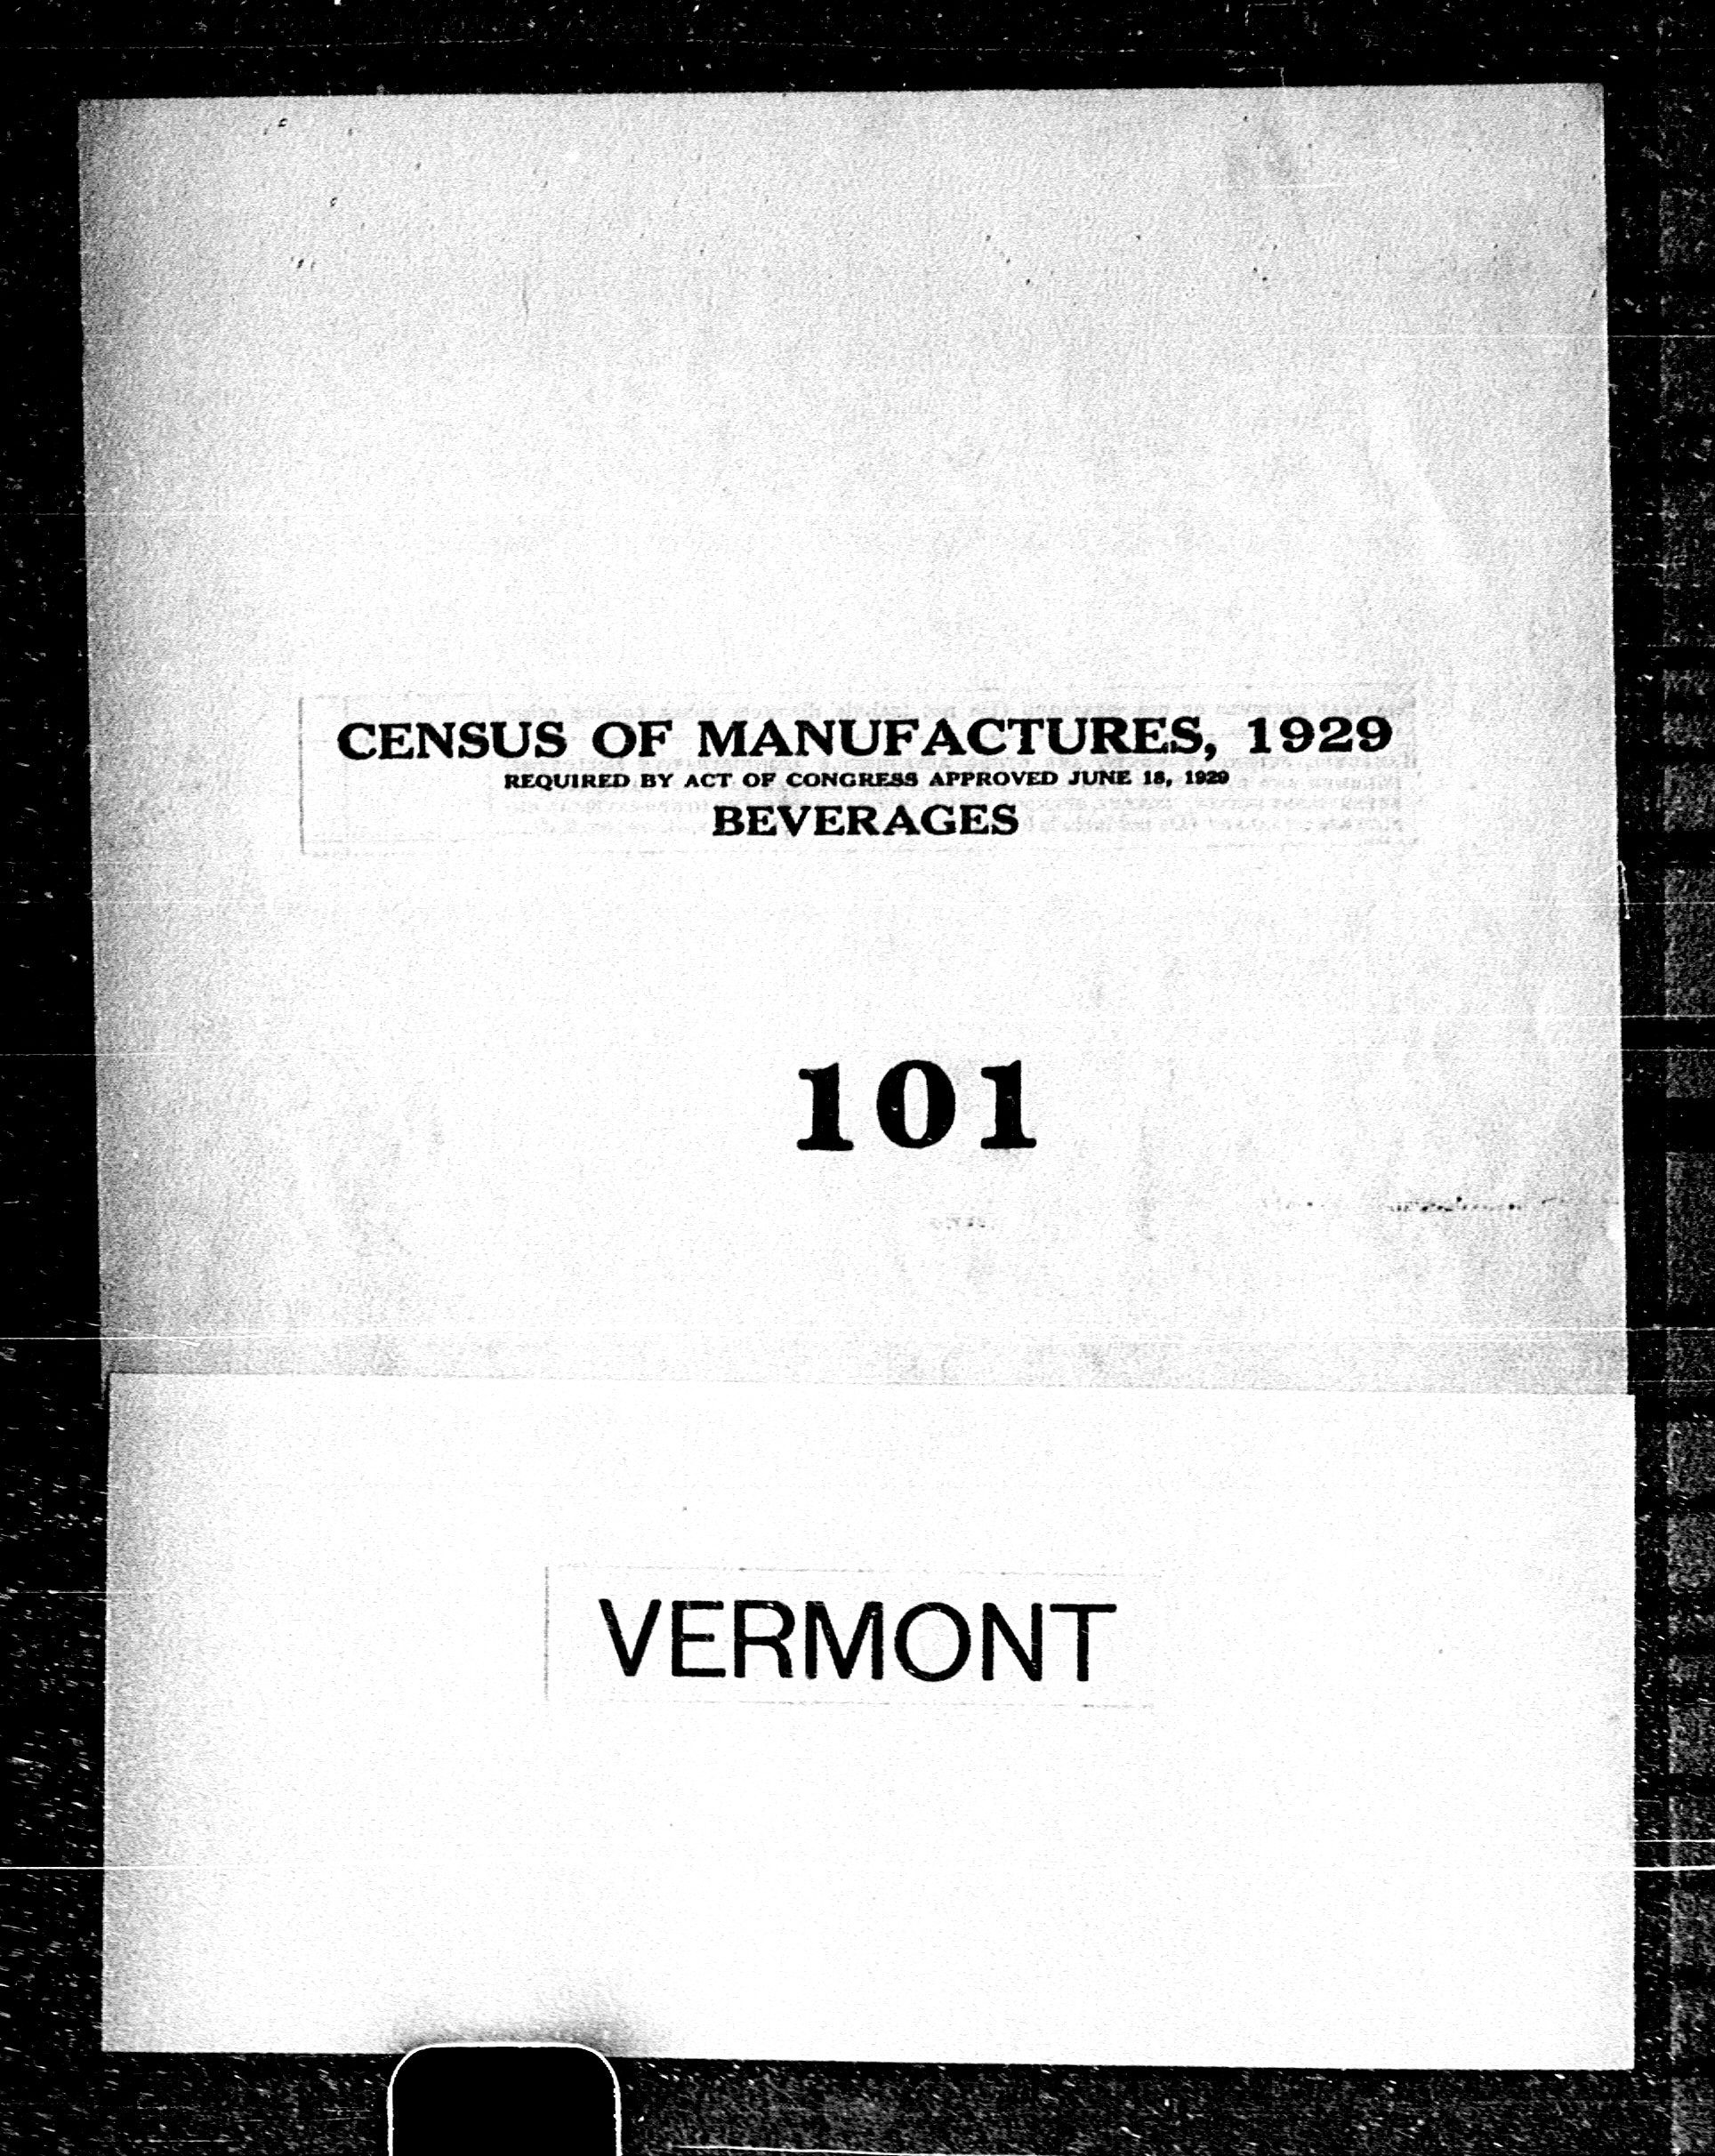 Vermont: Industry No. 101 - Beverages